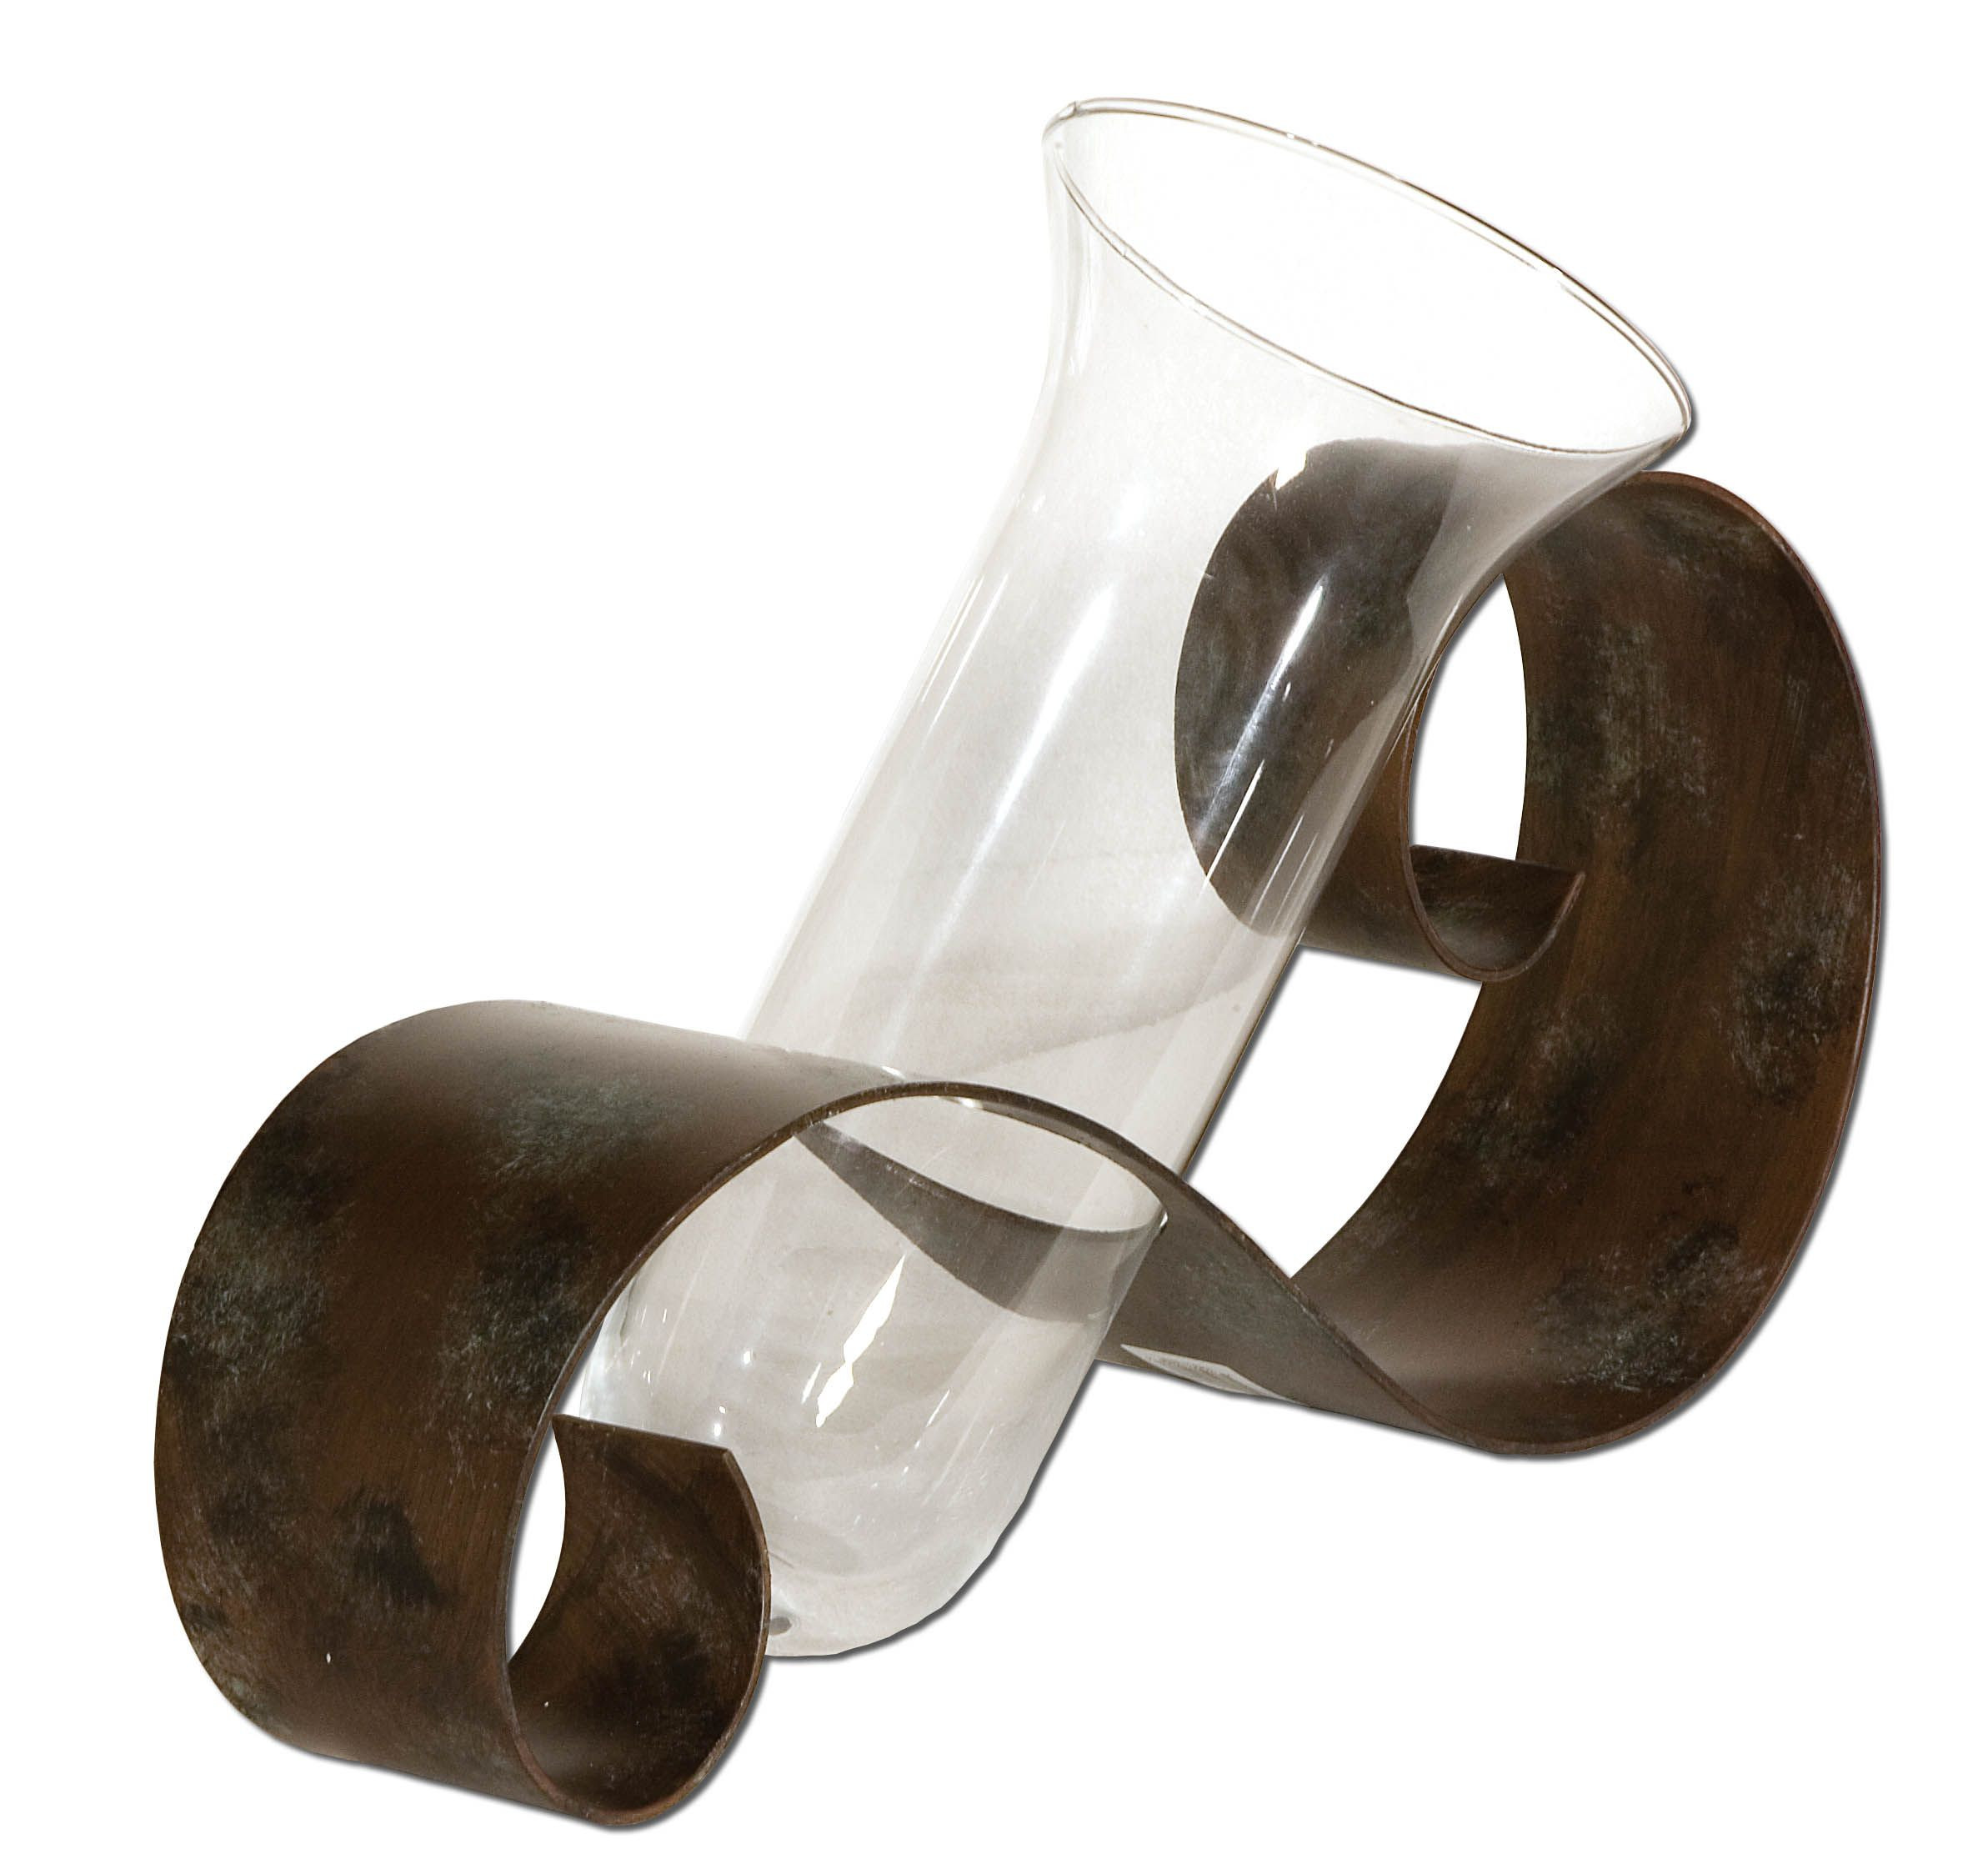 contemporary decorative vases of contemporary curl vase antiqued mahogany hand forged metal with intended for contemporary curl vase antiqued mahogany hand forged metal with black and light gray distressing and a clear glass vase flowers not included